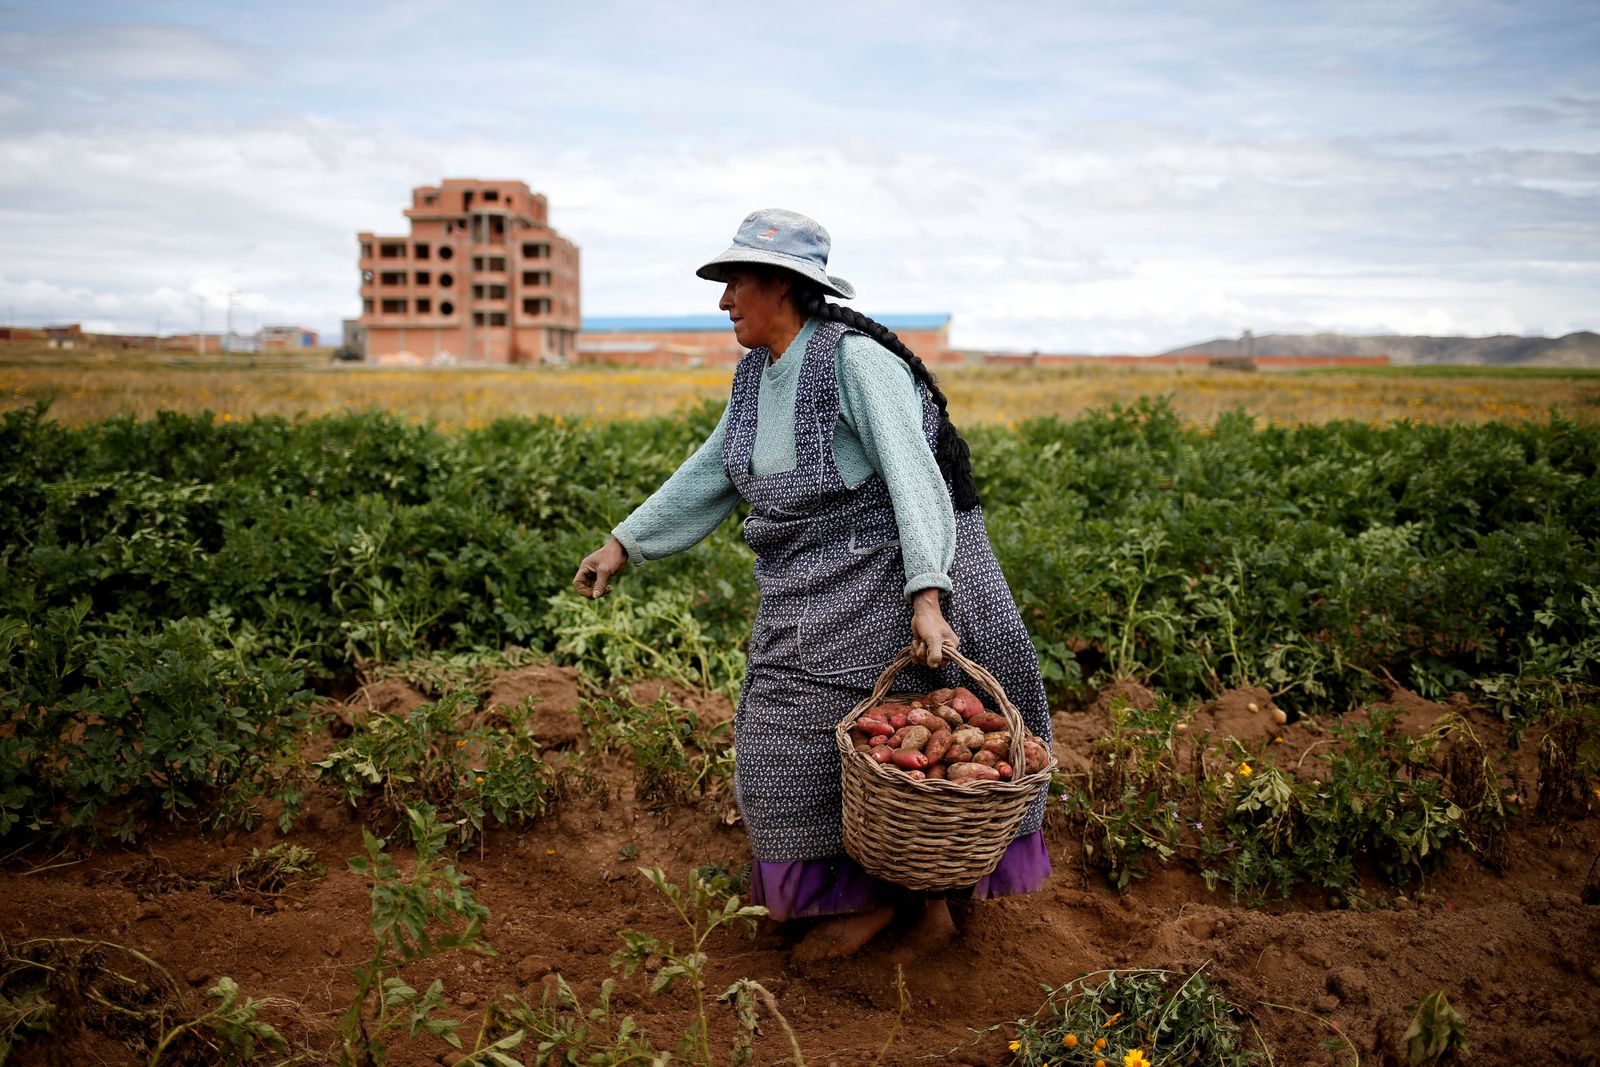 A Bolivian farmer carries potatoes as the country is under a nationwide quarantine to contain the coronavirus disease (COVID-19) in Laja